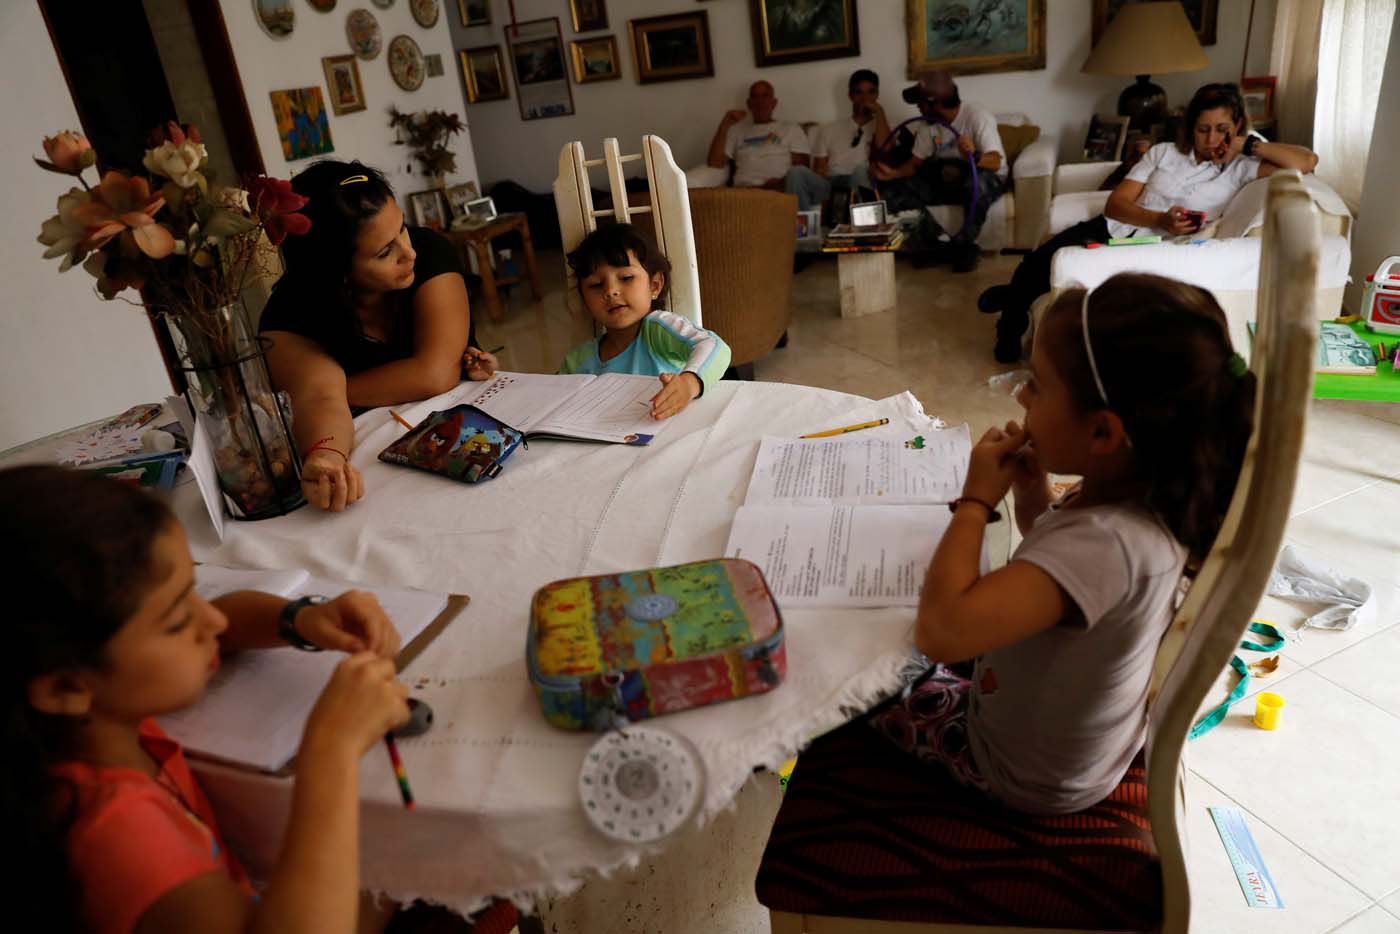 Aldrina Valenzuela (L), helps her daughter Renata (C) and her nieces Carlota (L) and Carmen, to do the homework at her mother's house on a day of protests in Caracas, Venezuela June 14, 2017. Picture taken June 14, 2017. REUTERS/Carlos Garcia Rawlins